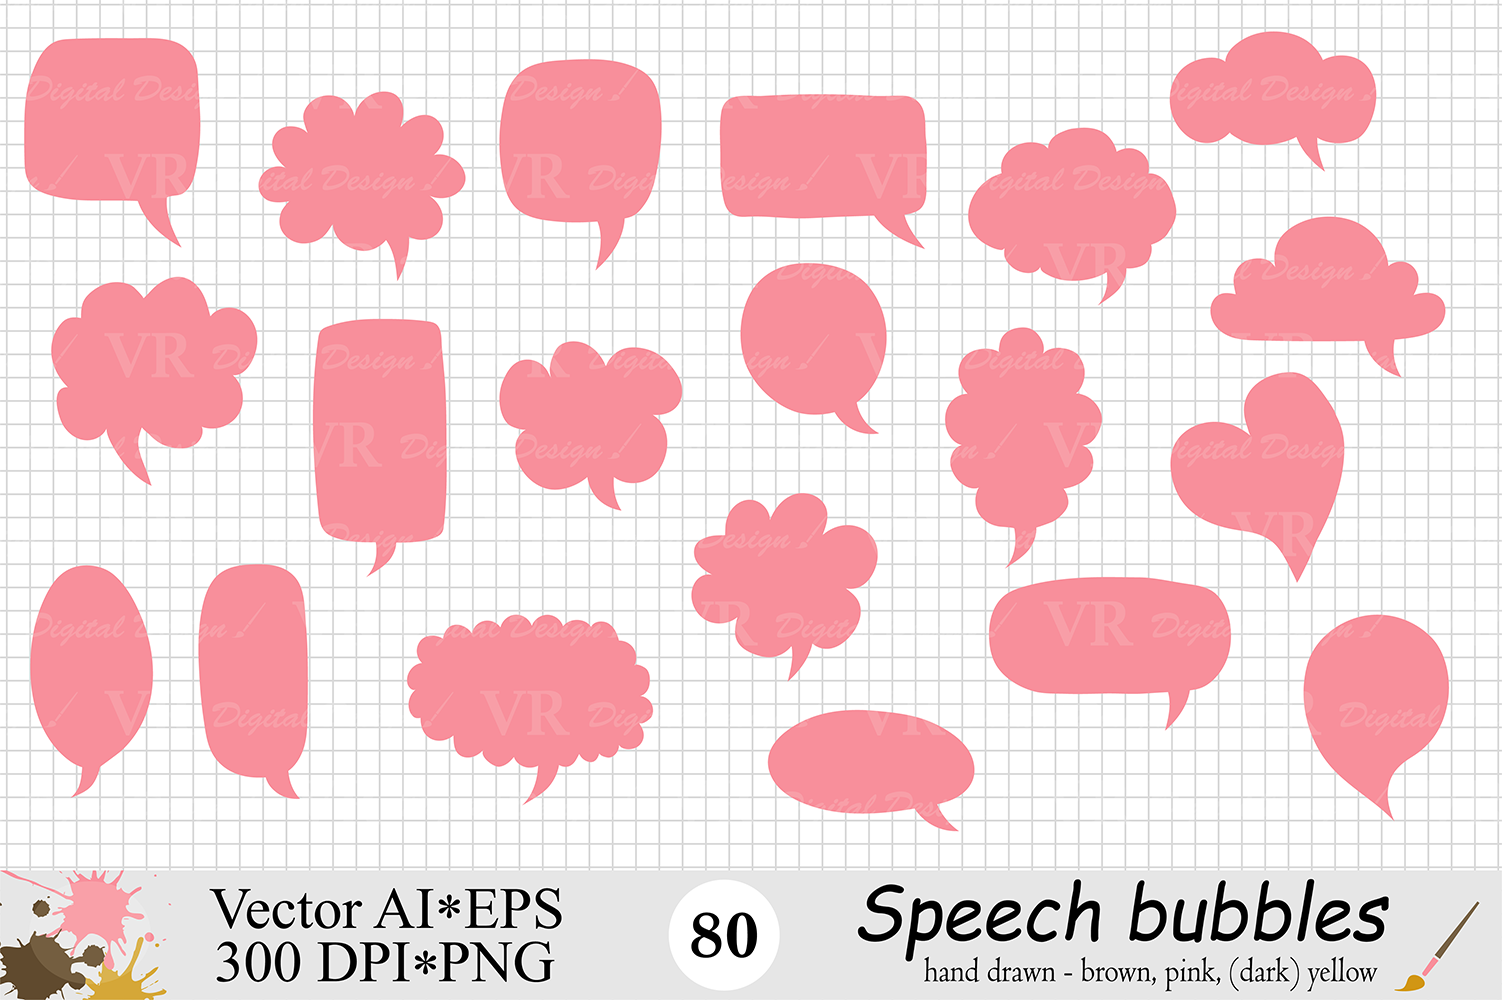 Speech Bubbles Clipart / Chat Bubbles / Hand drawn Text bubbles / Brown, Pink, Yellow - Vector example image 2